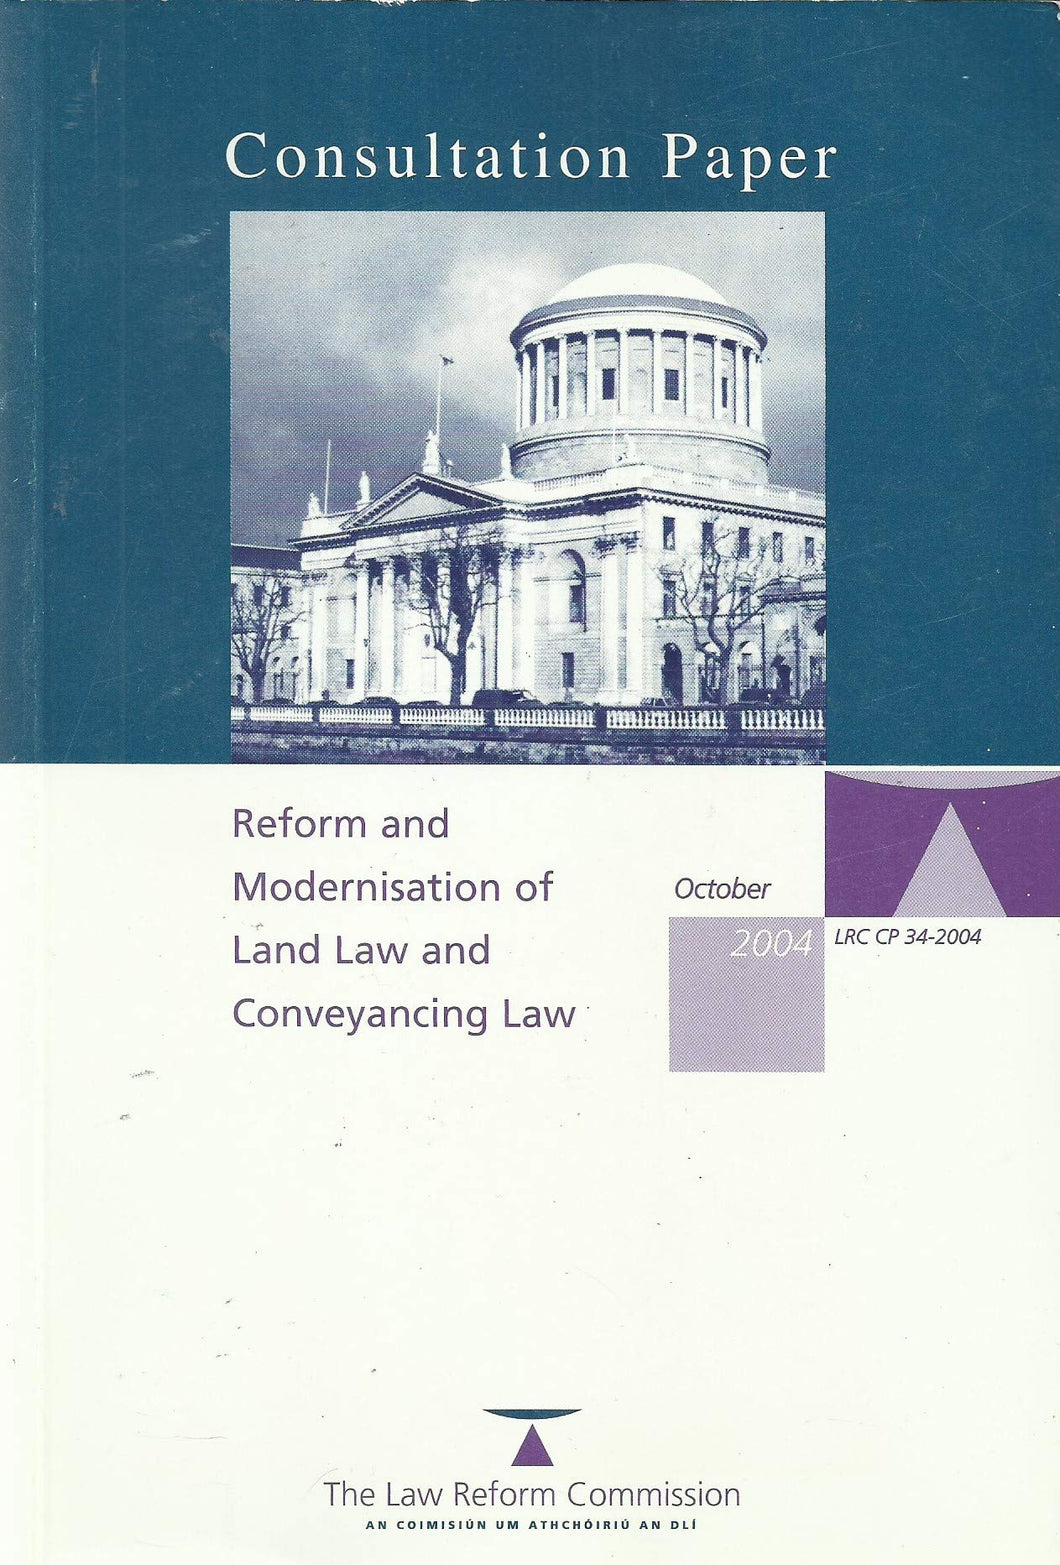 Reform and Modernisation of Land Law and Conveyancing Law - Consultation Paper, October 2004 (LRC CP 34-2004)